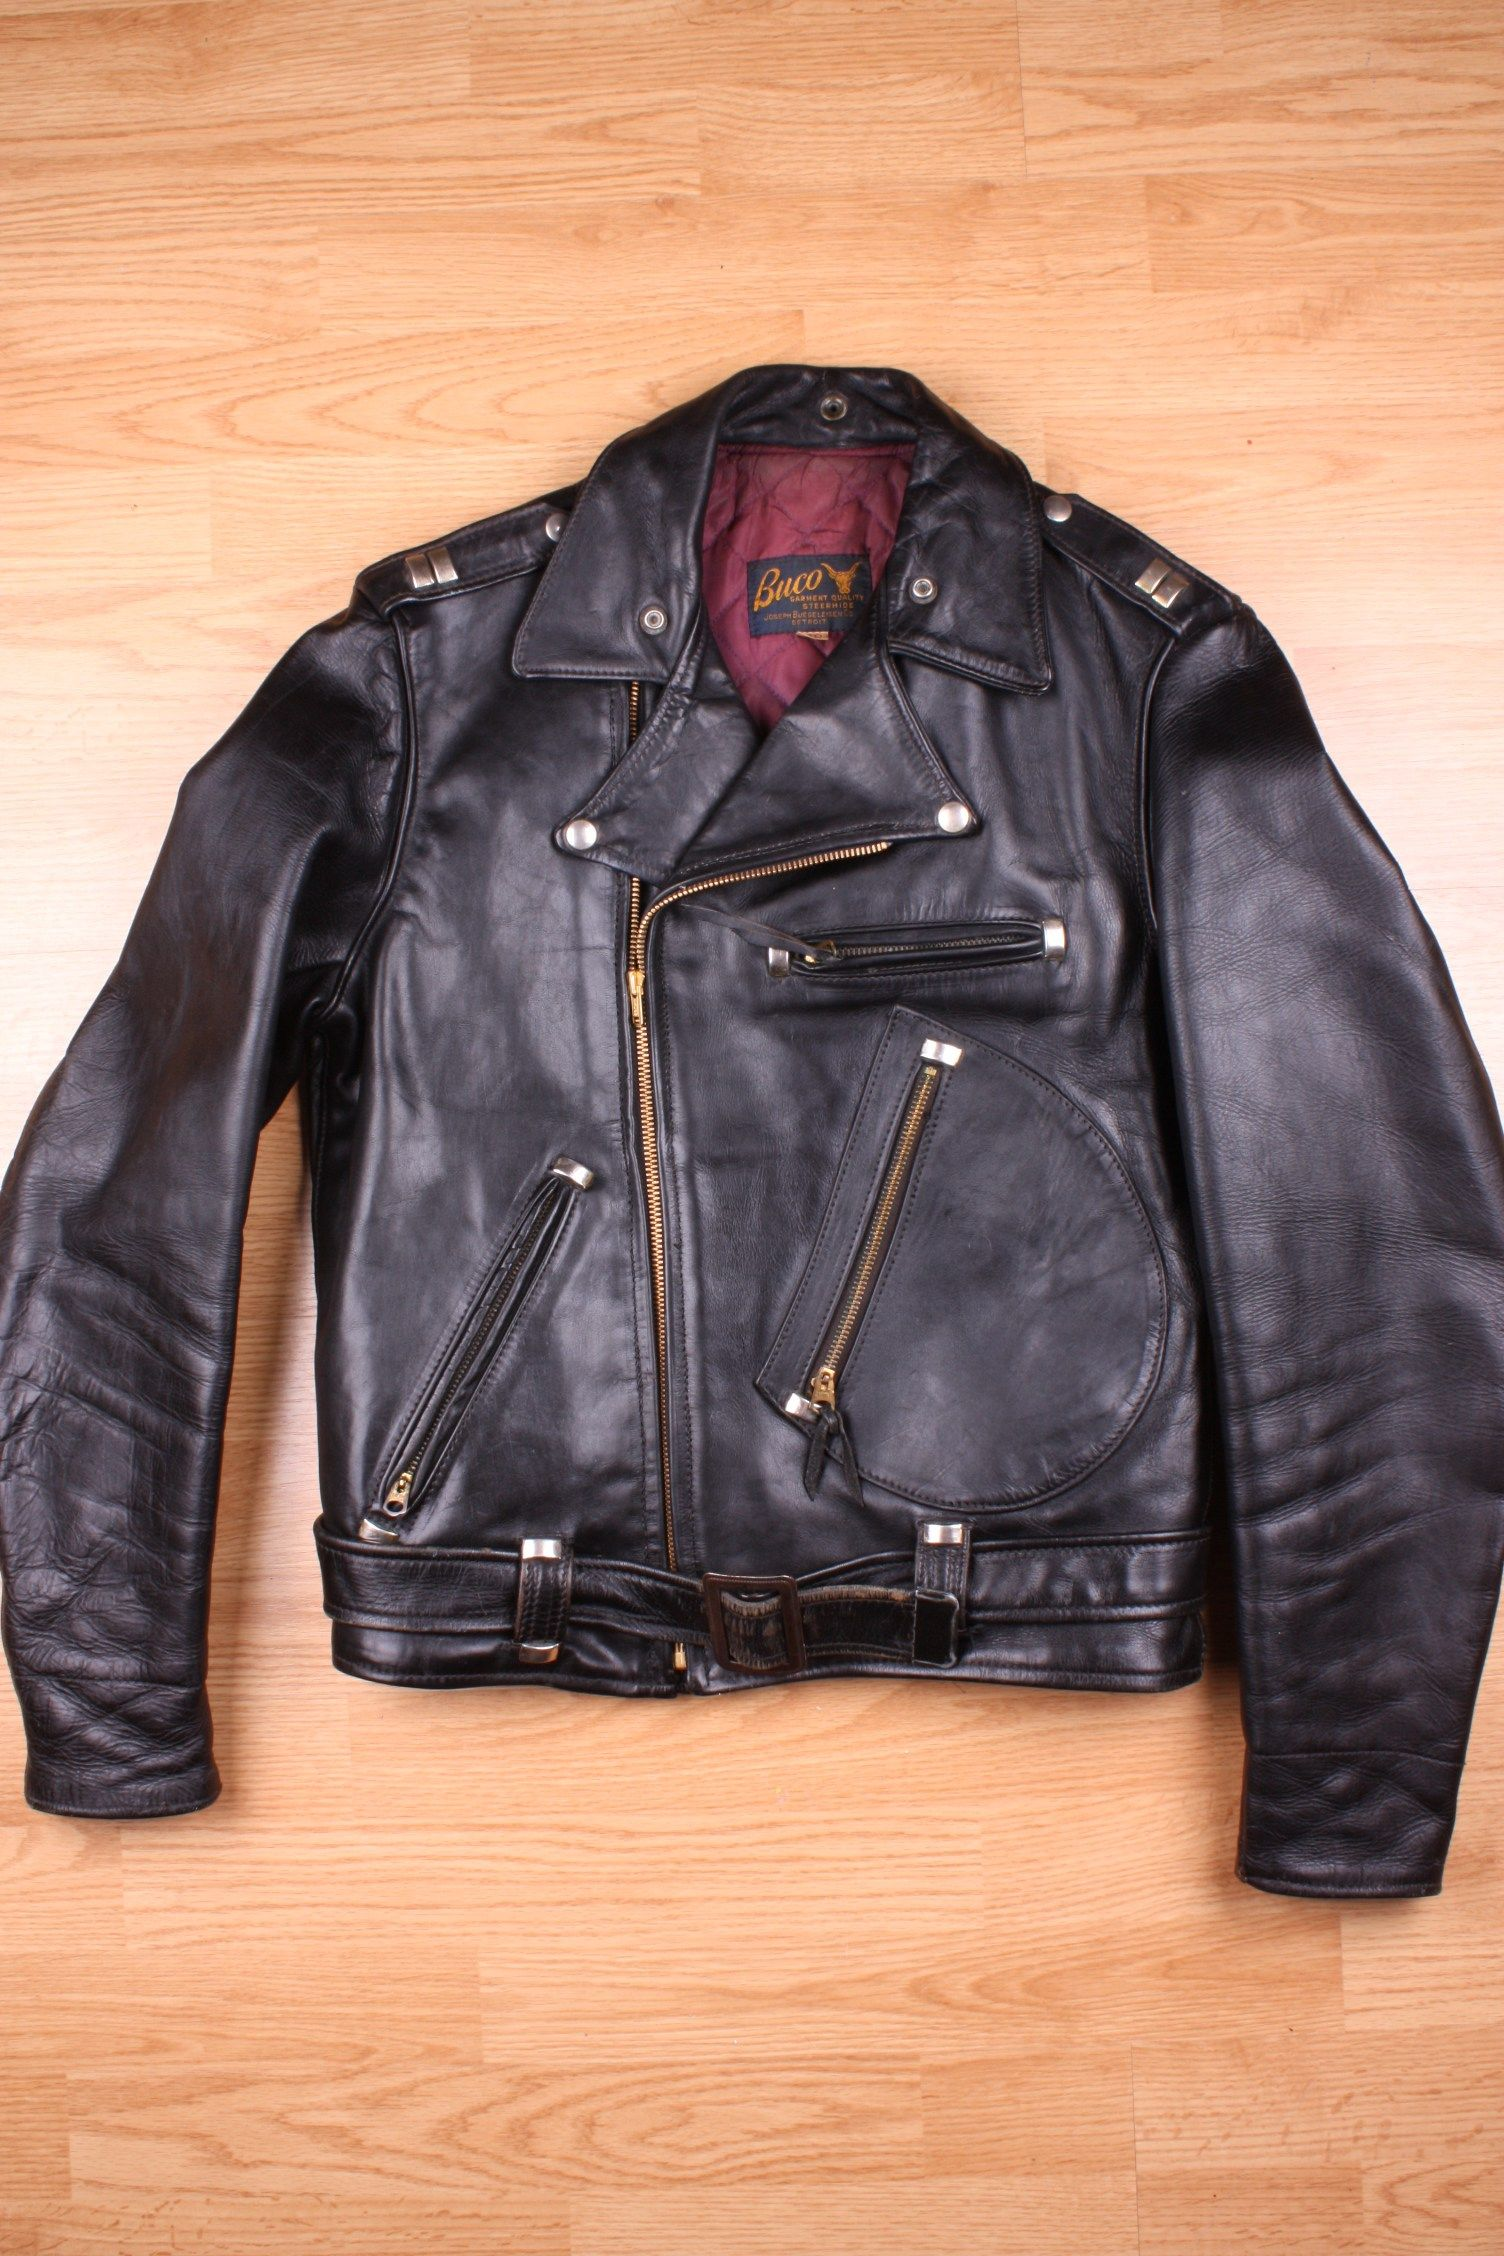 I Don T Remember Where I Found This Buco Leather Jacket It Was A Buco Model J 82 And It S A Cla Vintage Leather Jacket Leather Jacket Men Leather Jacket Style [ 2256 x 1504 Pixel ]